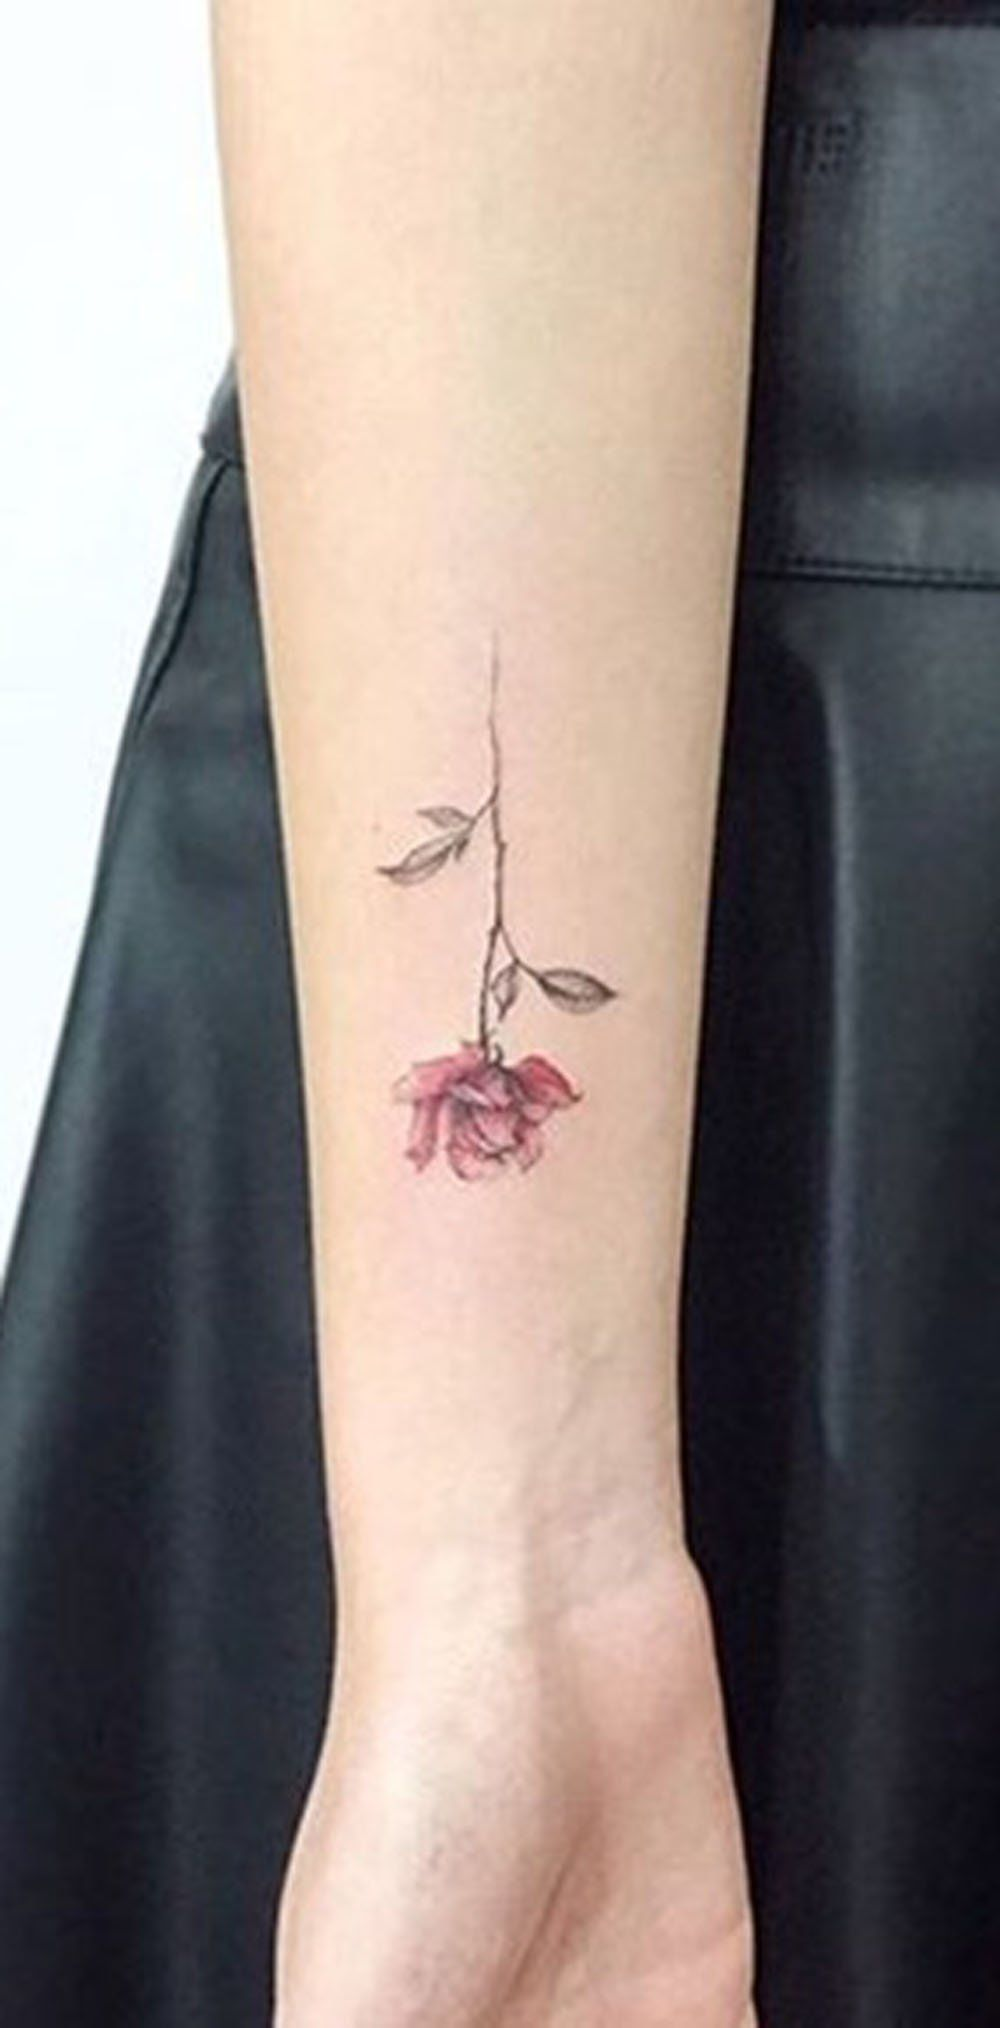 30 Of The Top Trending Tattoo Design Ideas Of 2018 For Women